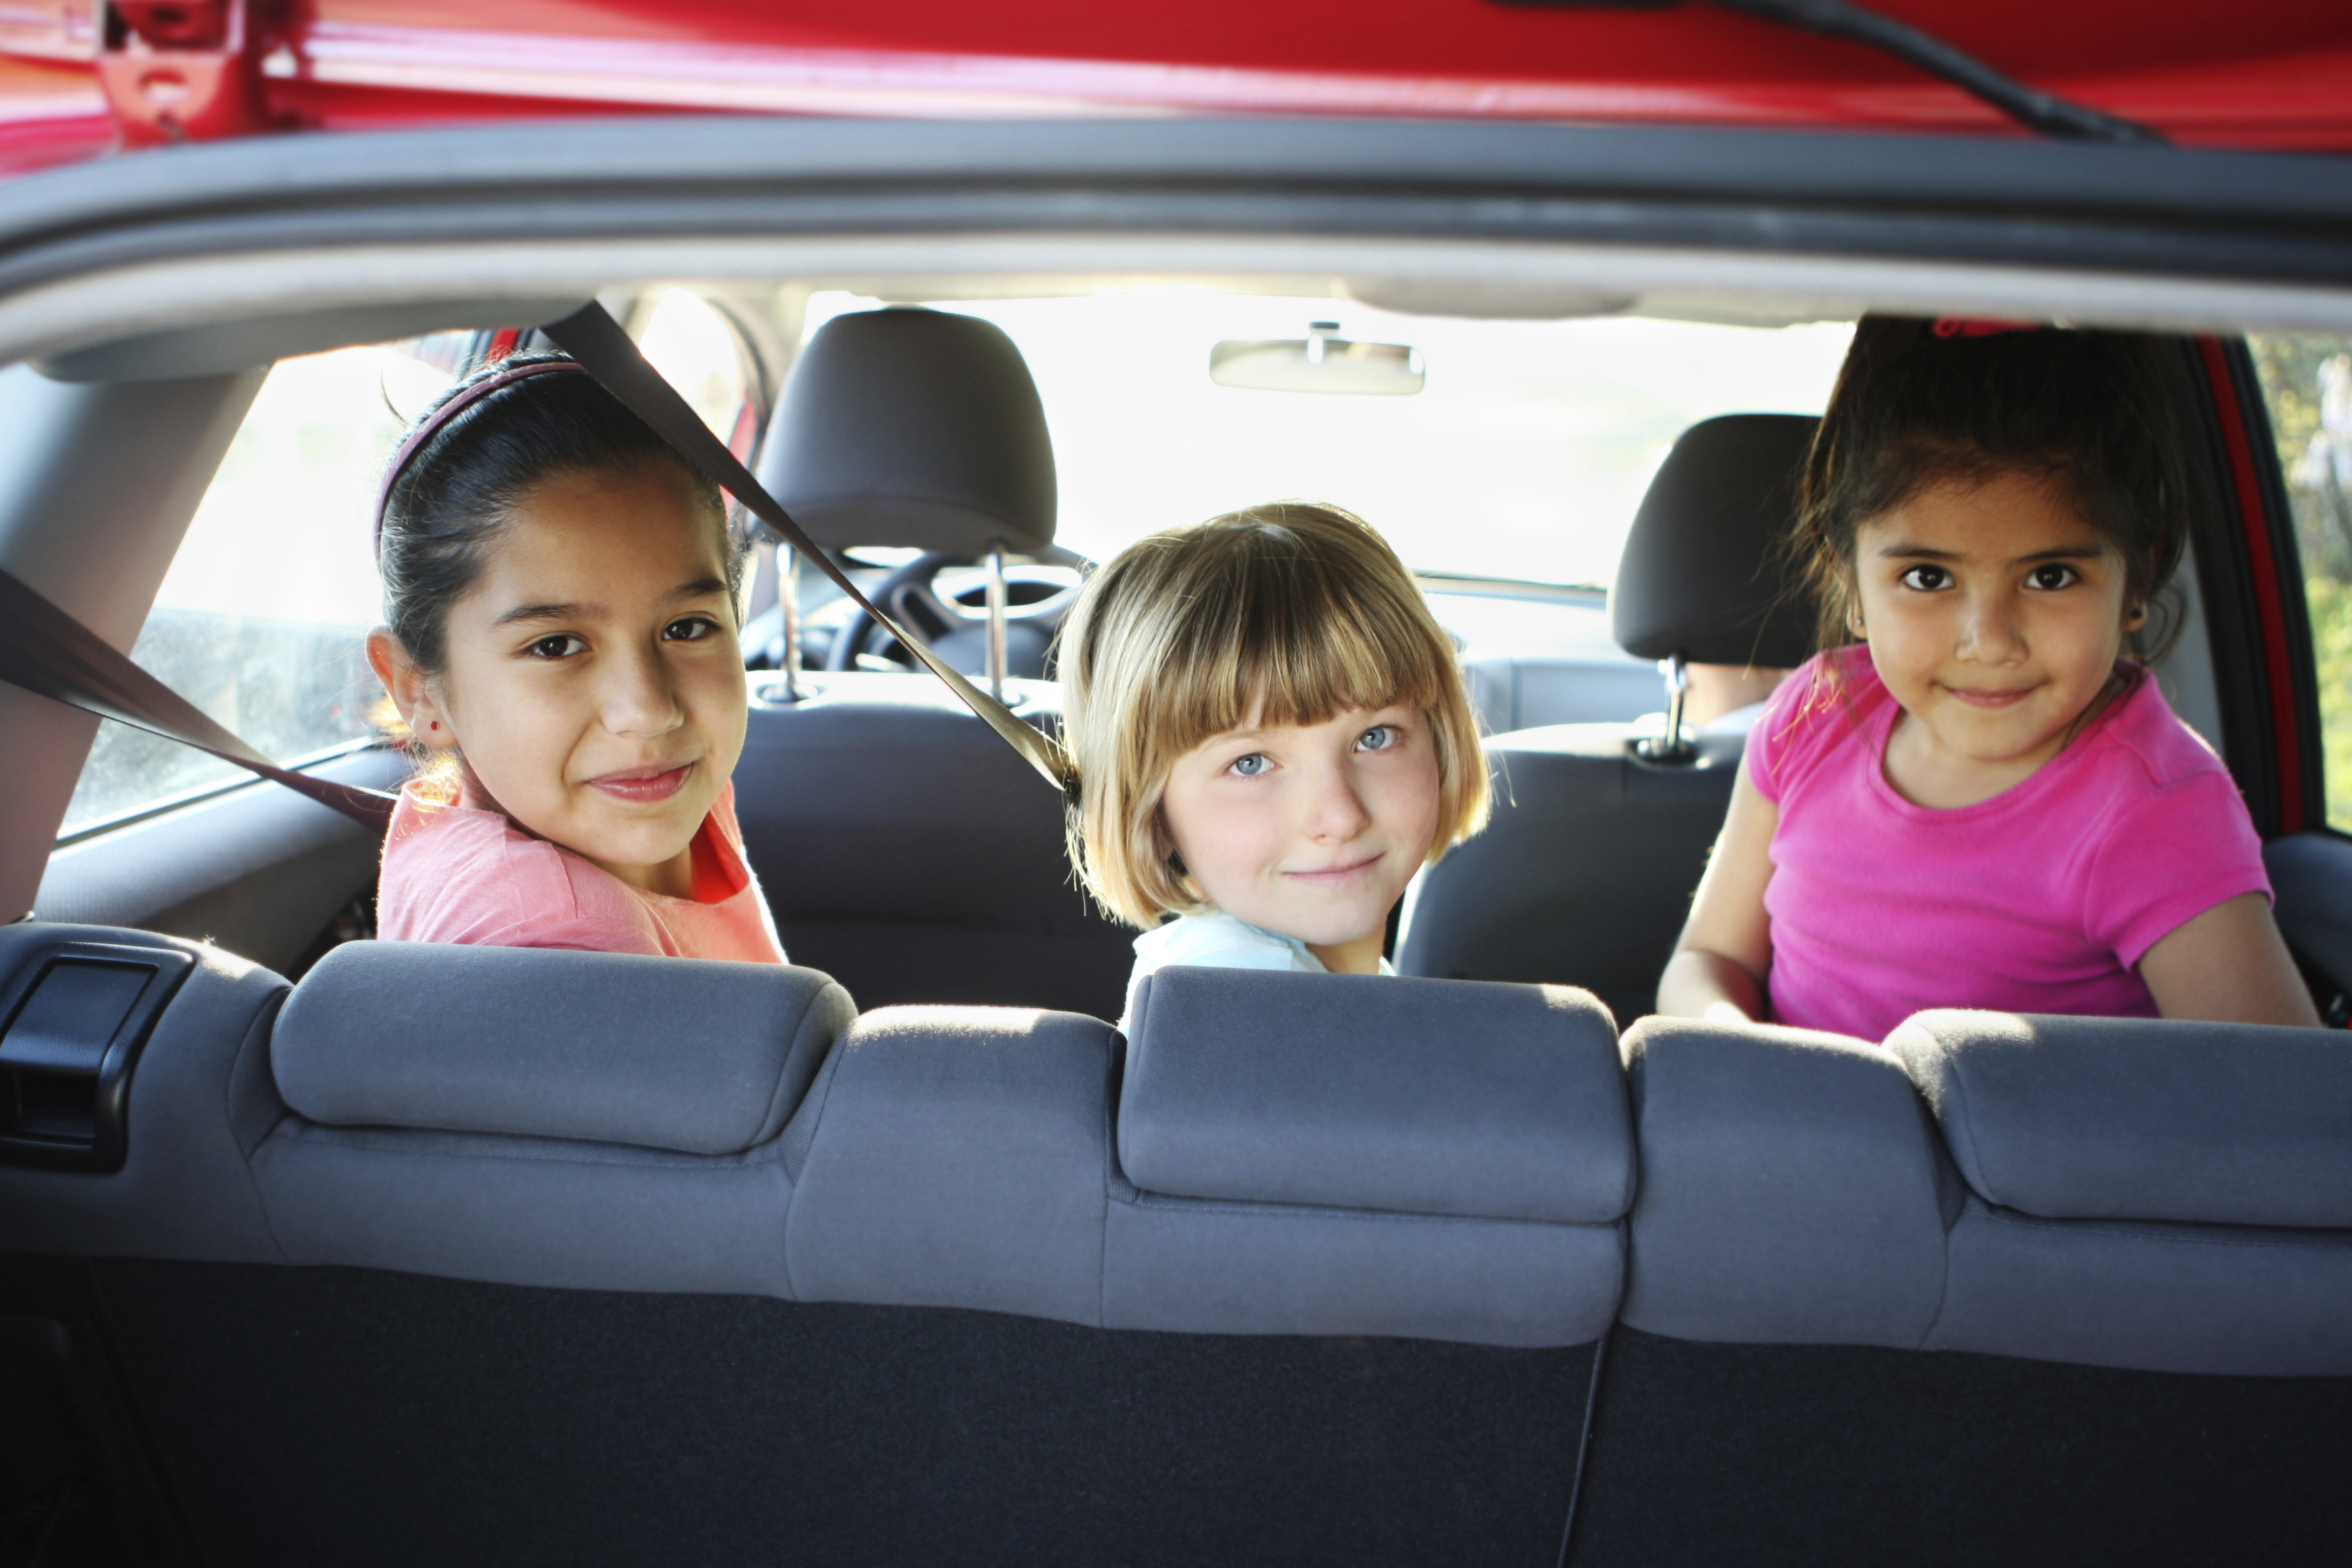 These Are Our Fave School Carpool Features (Apart From an Ejector Seat)